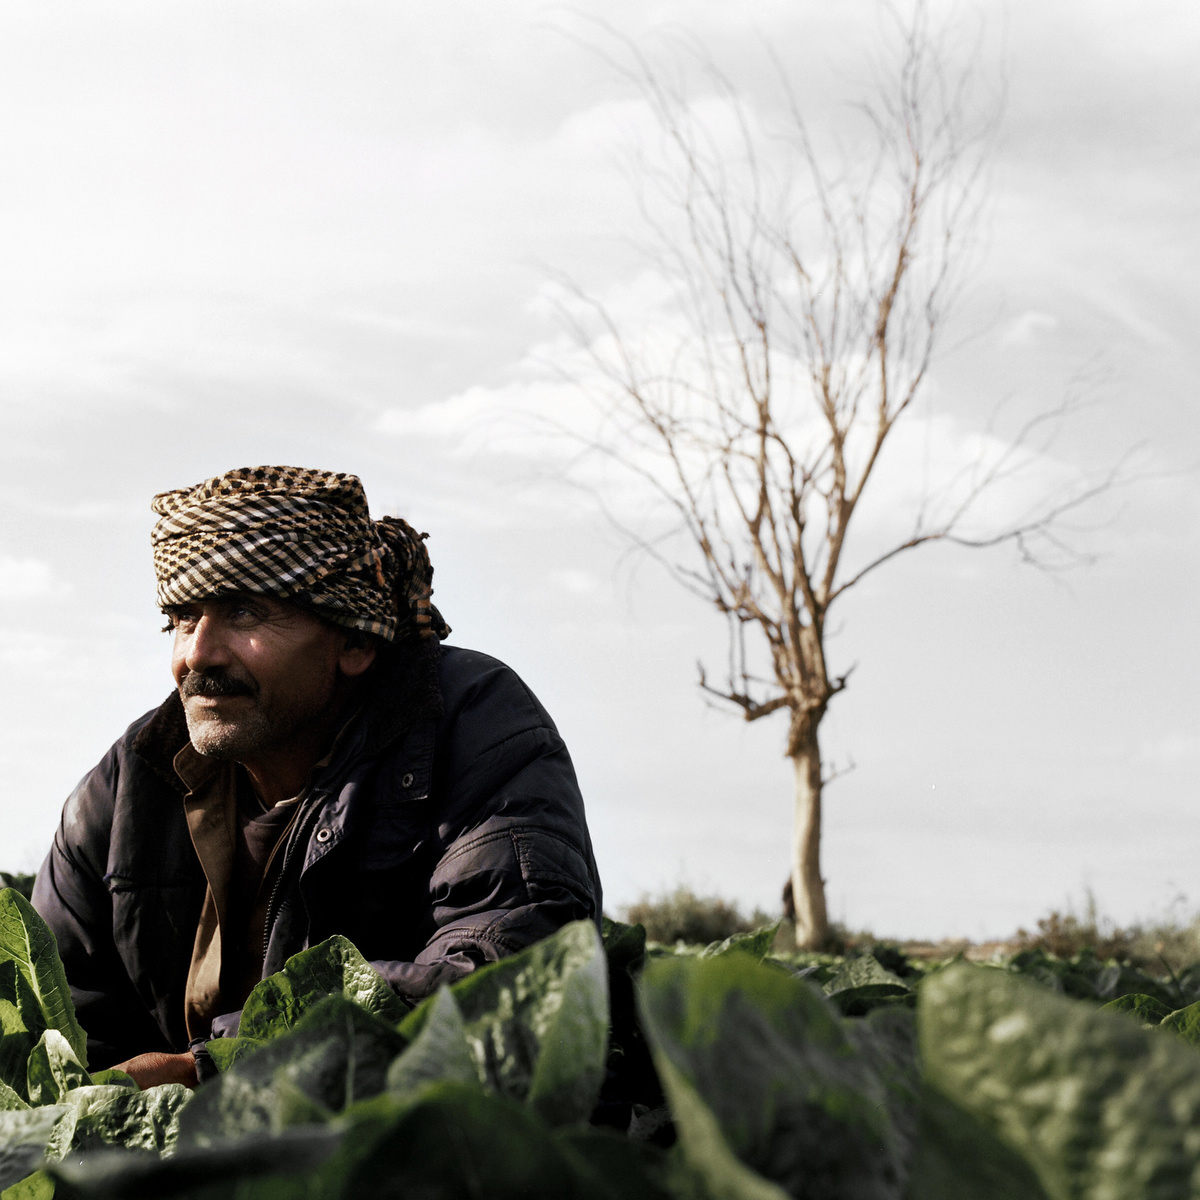 A farmer takes a break from working in a lettus field.